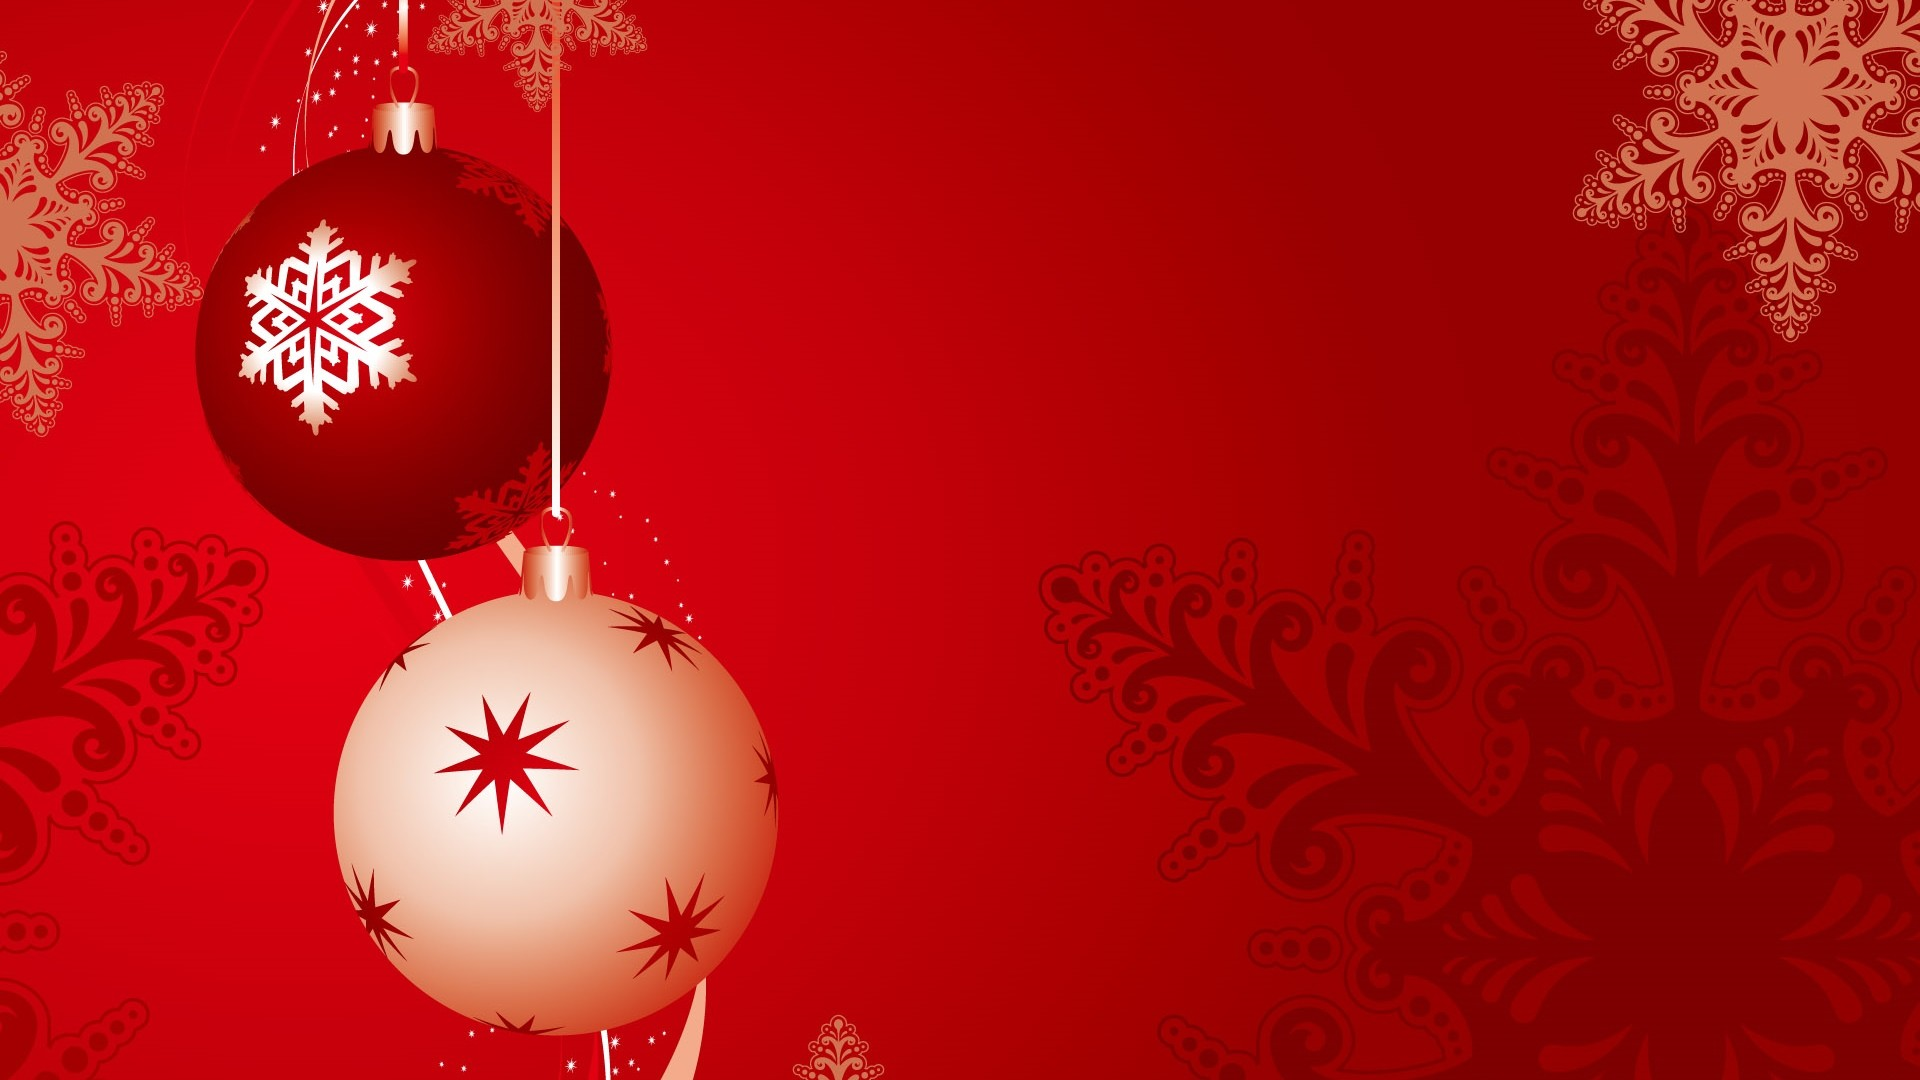 Backgrounds For Christmas Pictures 52 Images